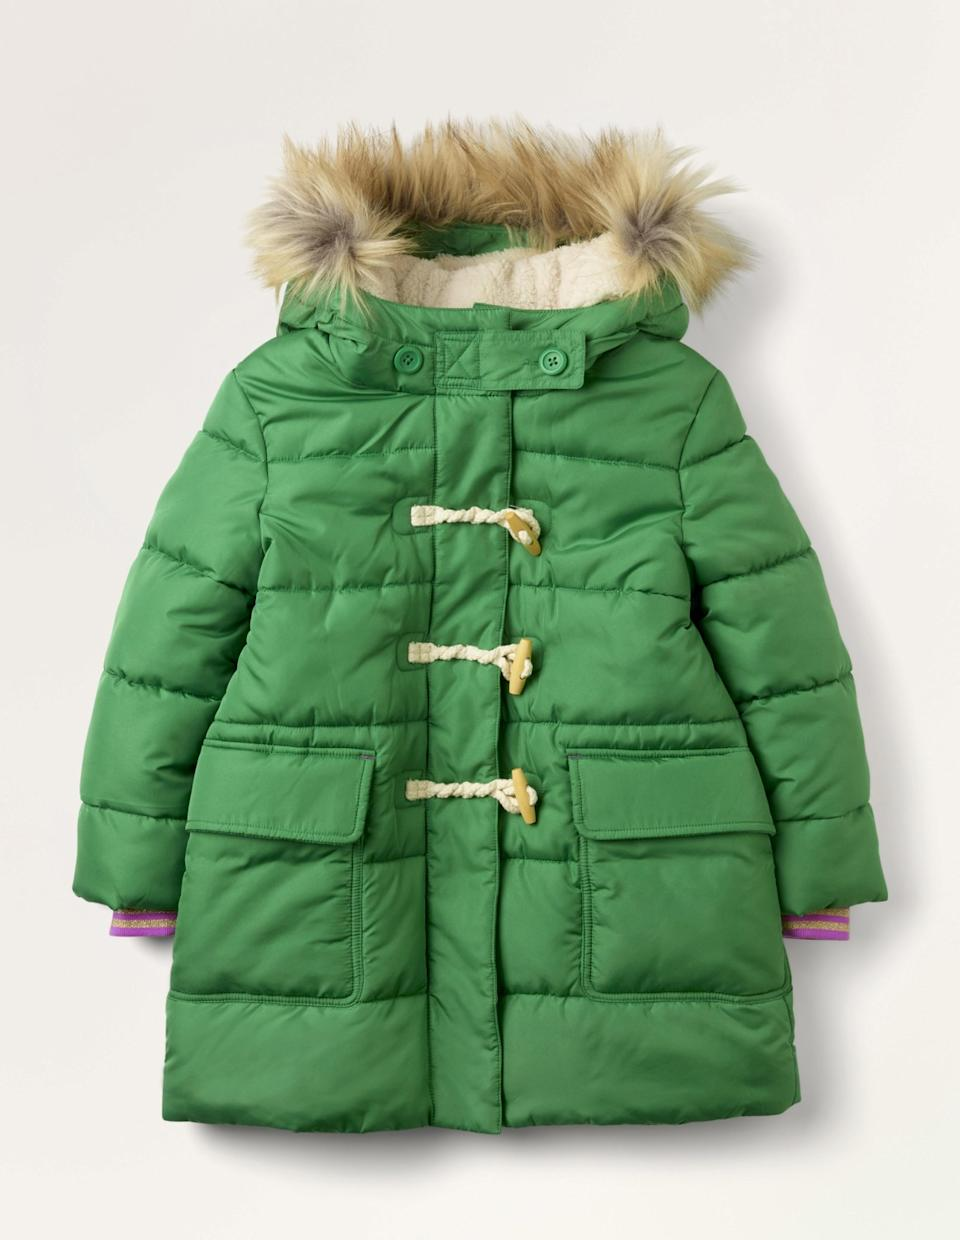 A photo of coat from Boden.